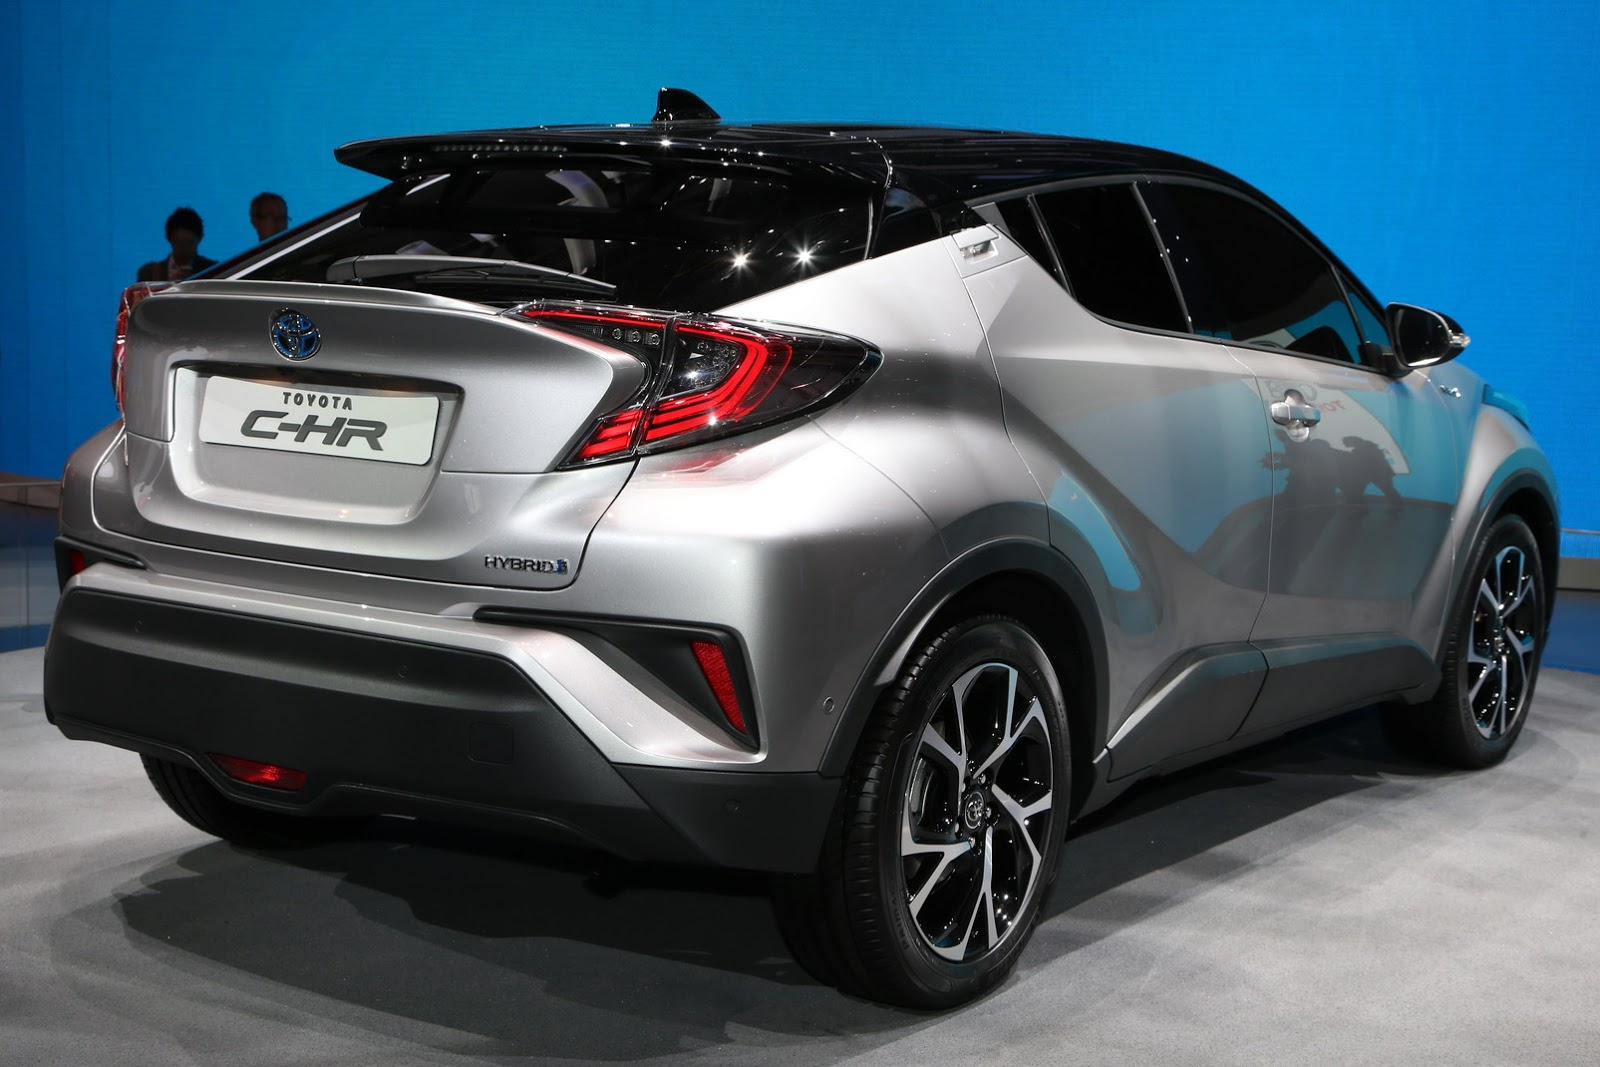 new toyota c-hr gets 1.2l turbo, 2.0l and 1.8l hybrid powertrains